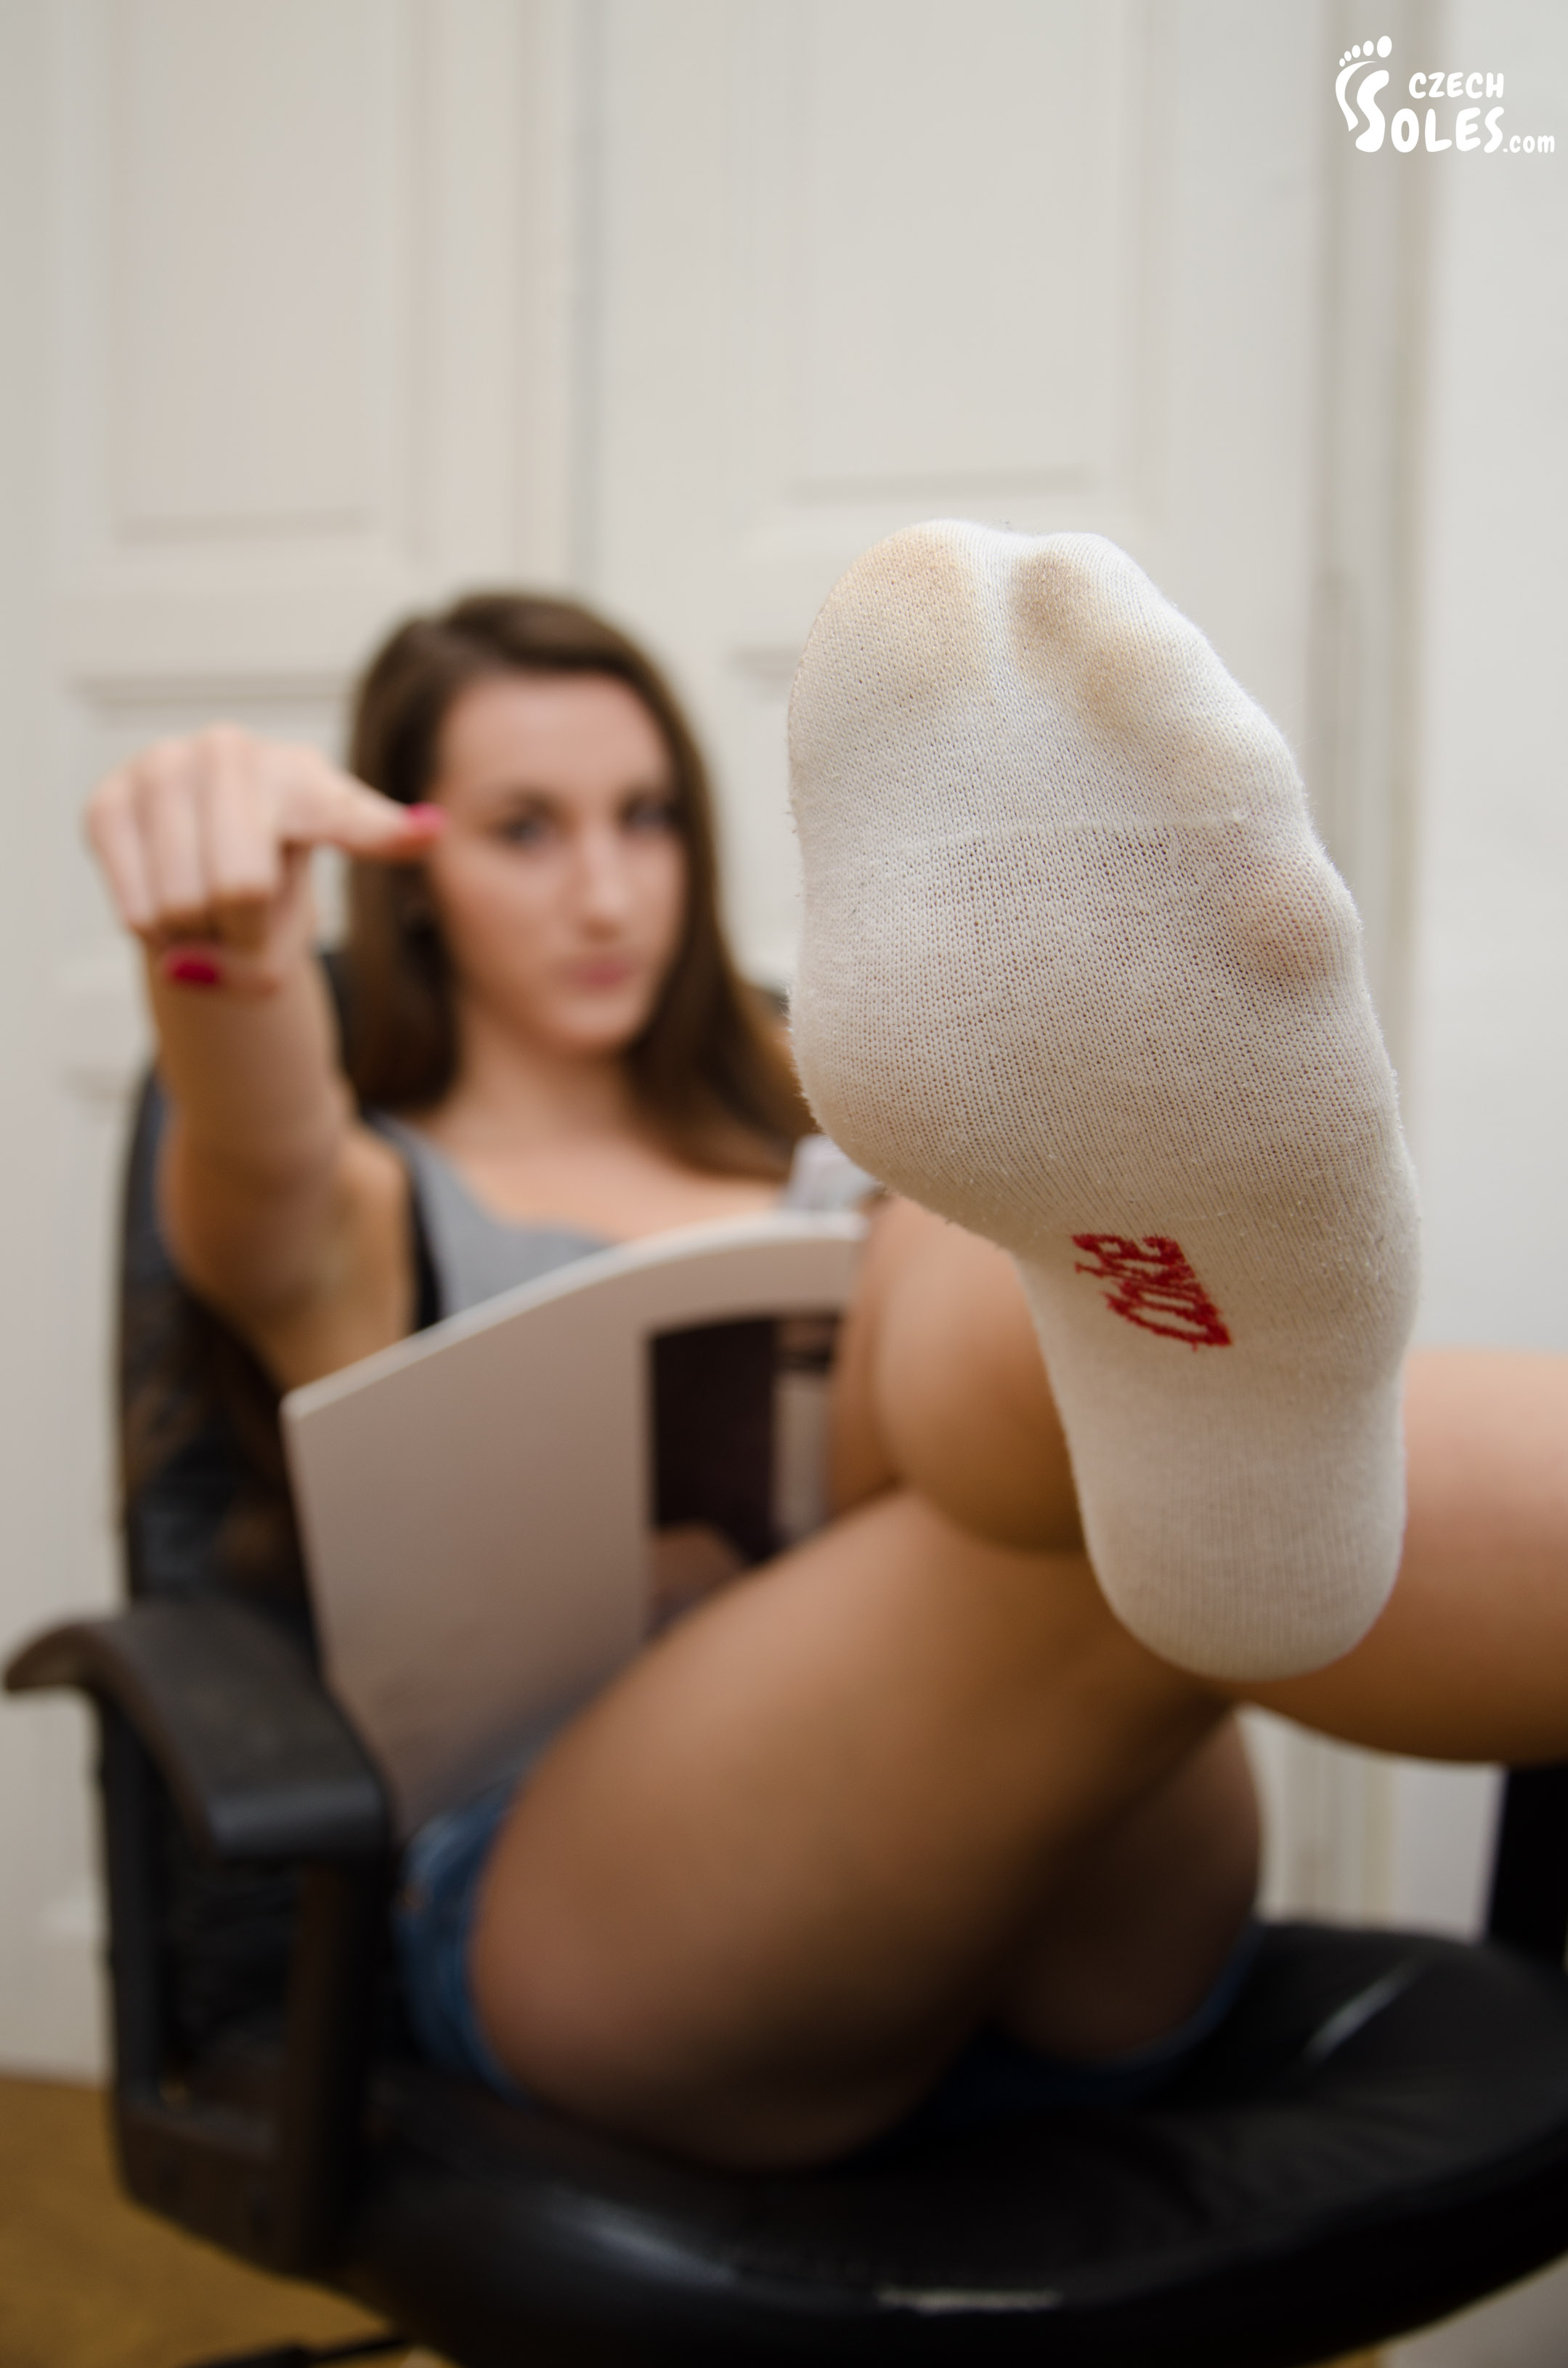 Apologise, girl worship feet sock fetish something is